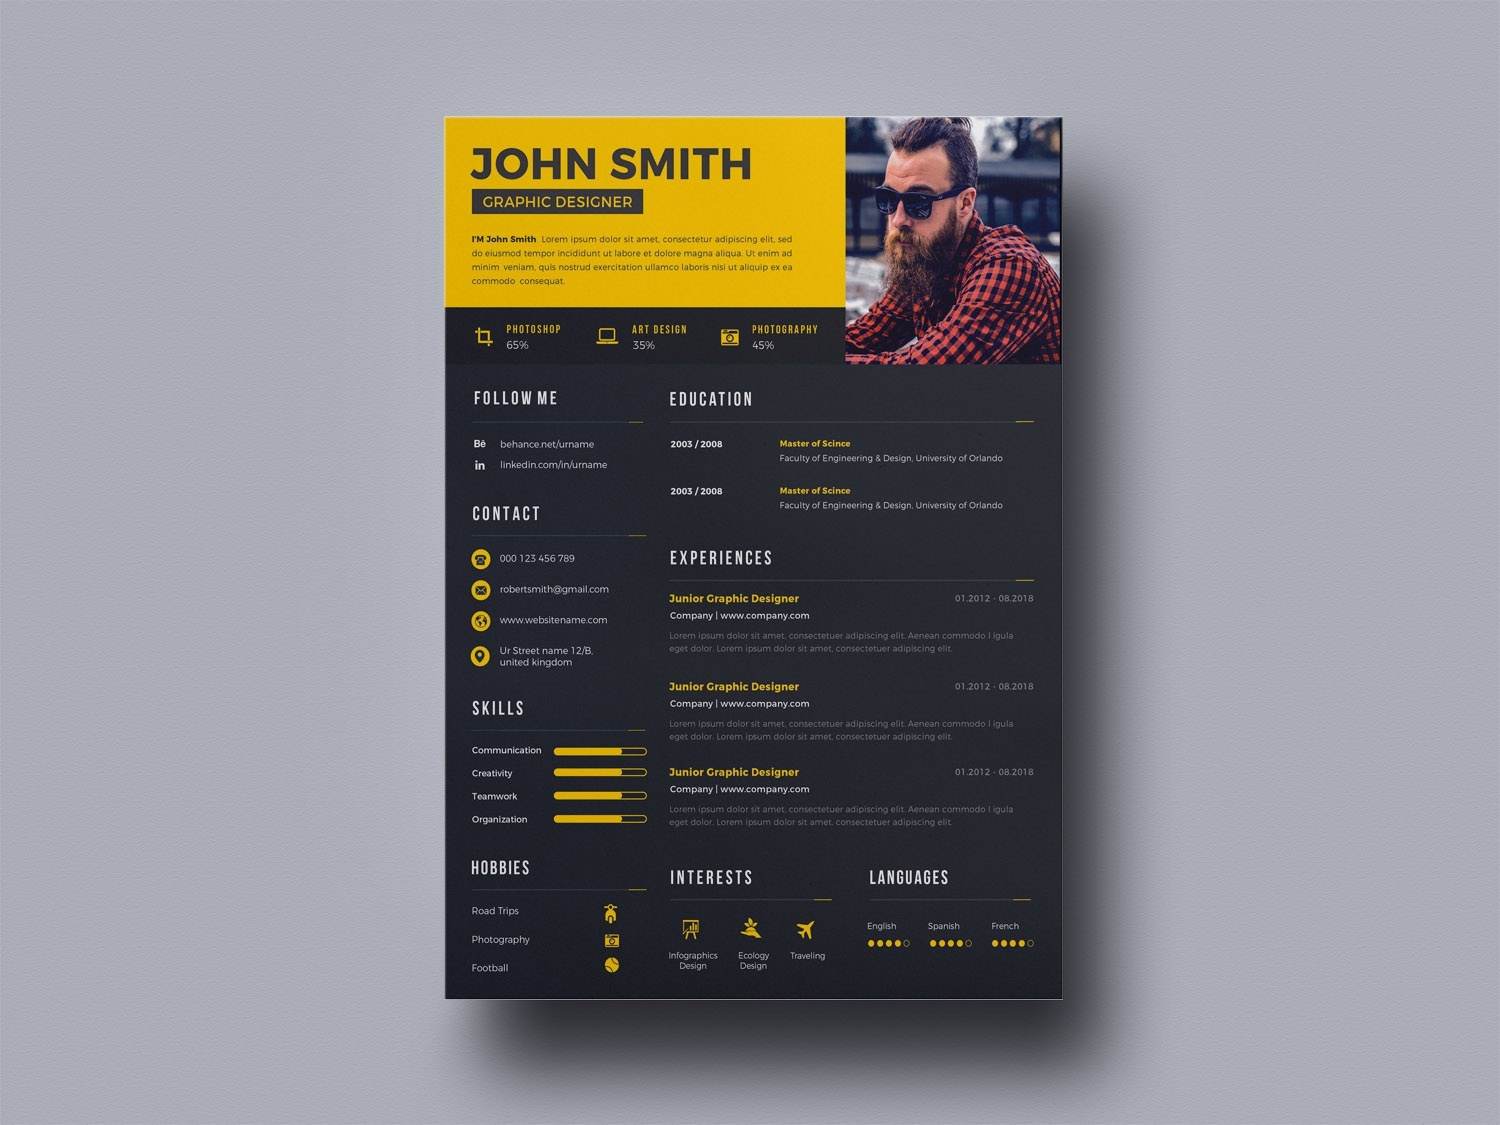 free creative designer resume template by andy khan on